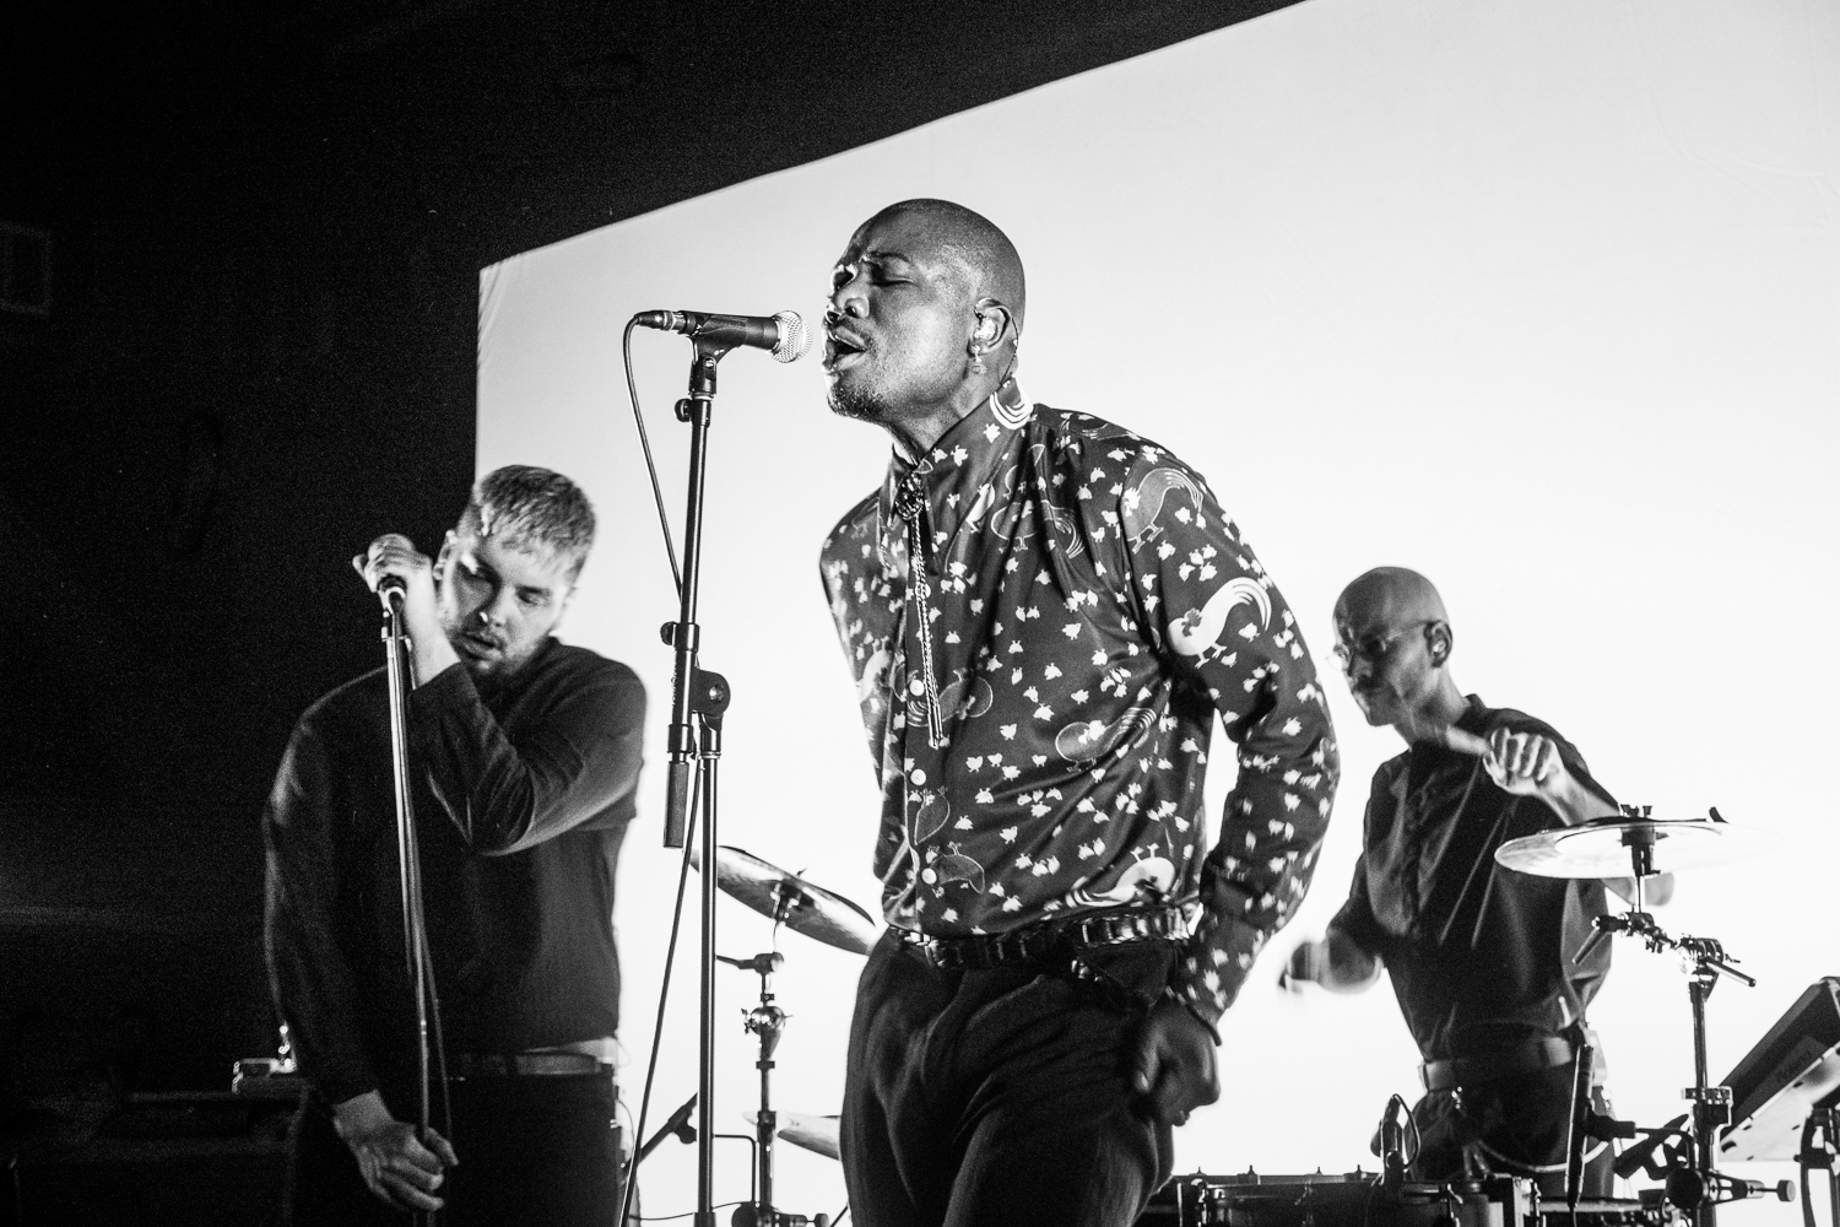 Young_Fathers_Brooklyn_11_21_18-1140908.JPG